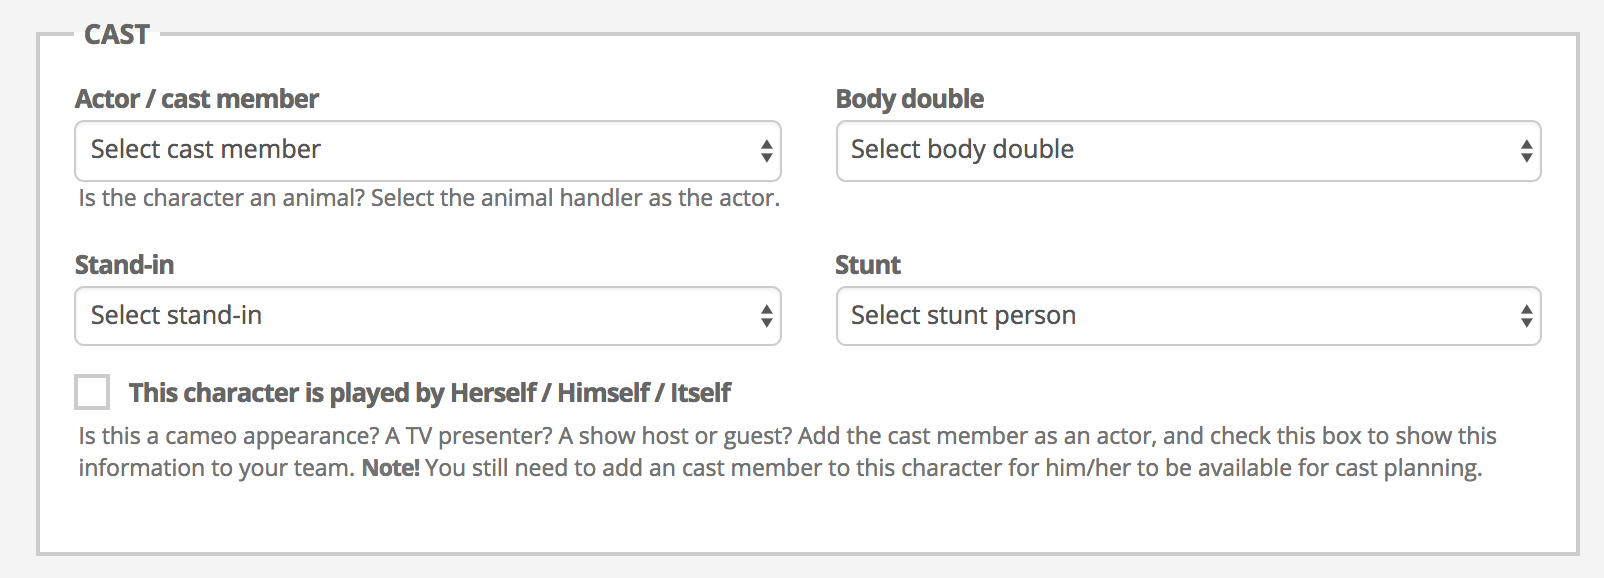 Cast member, stunt person, body double, stand-in